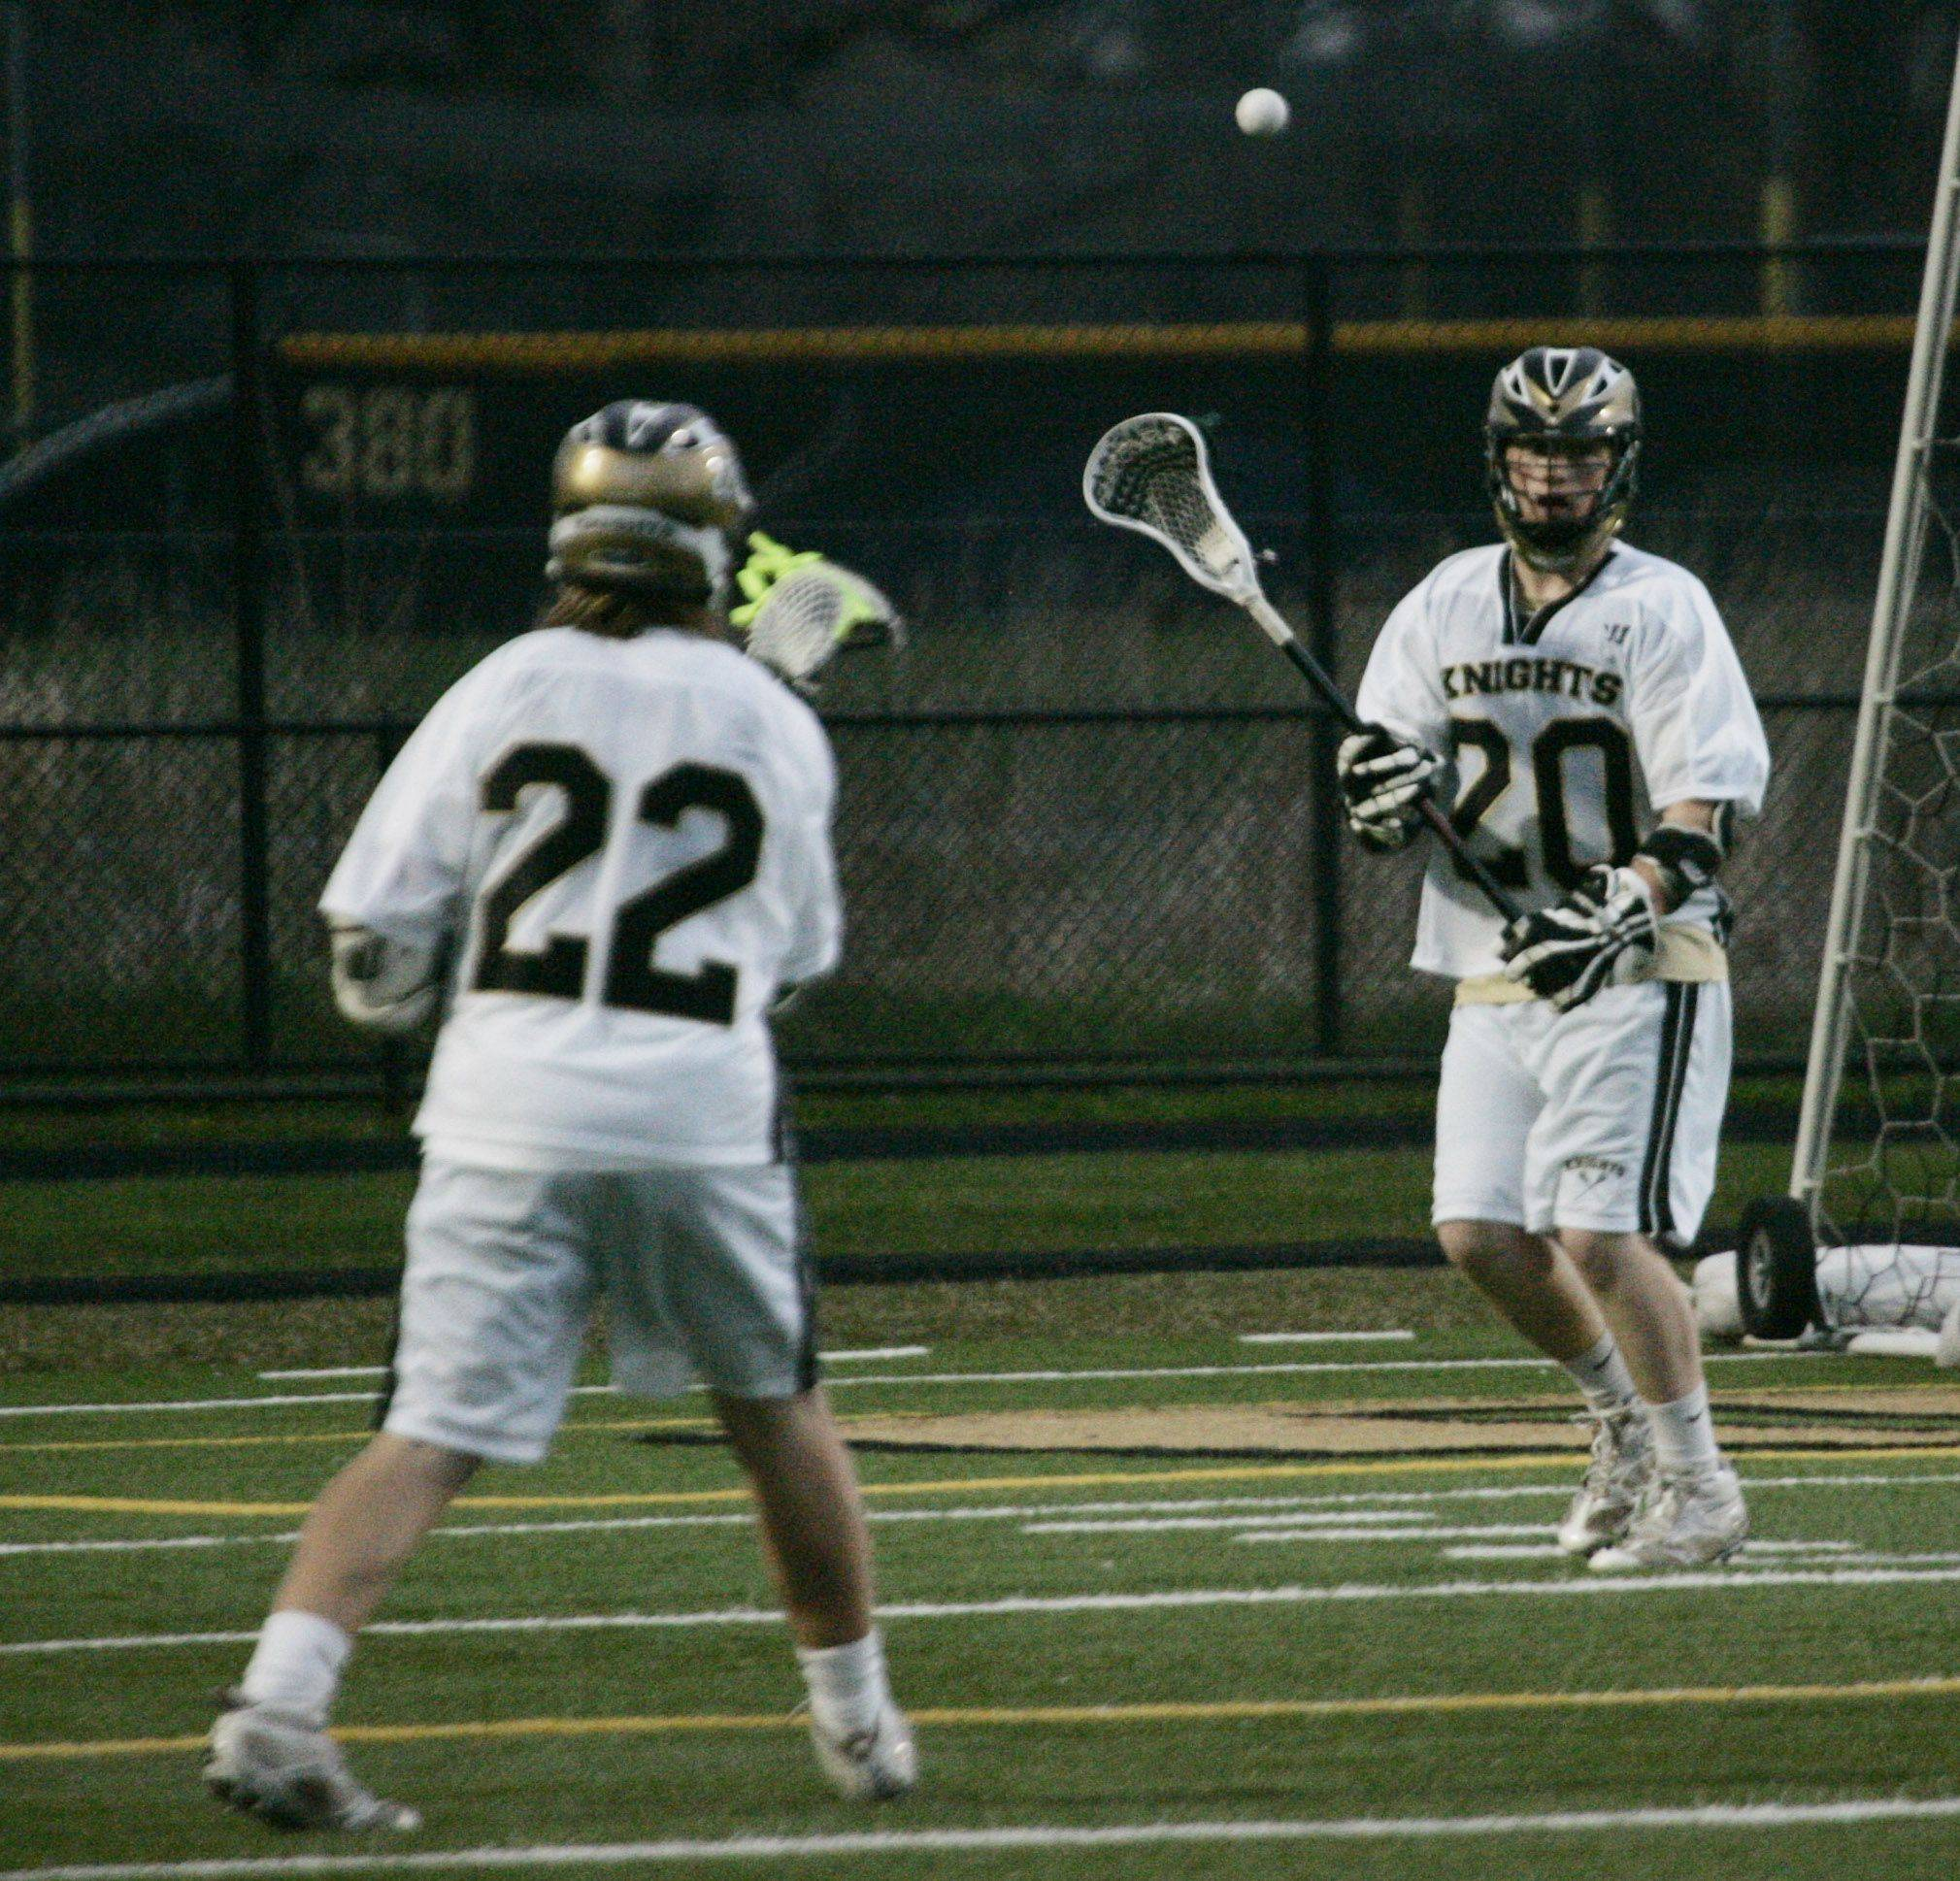 Grayslake Central battles Grayslake North in boys lacrosse Thursday, May 5, at Grayslake North High School.